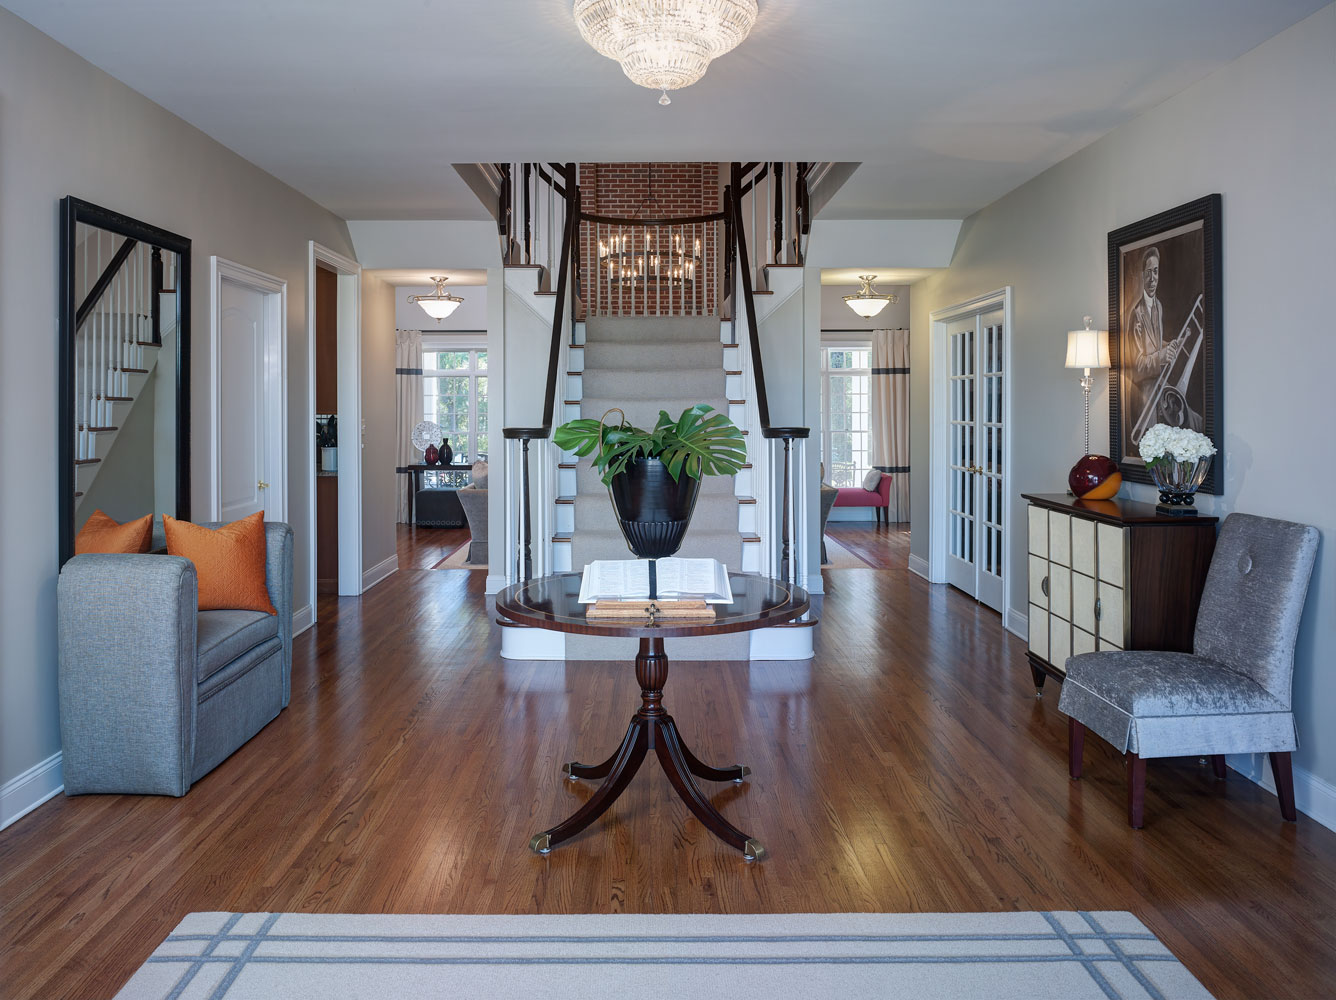 Chic & Welcoming Foyer